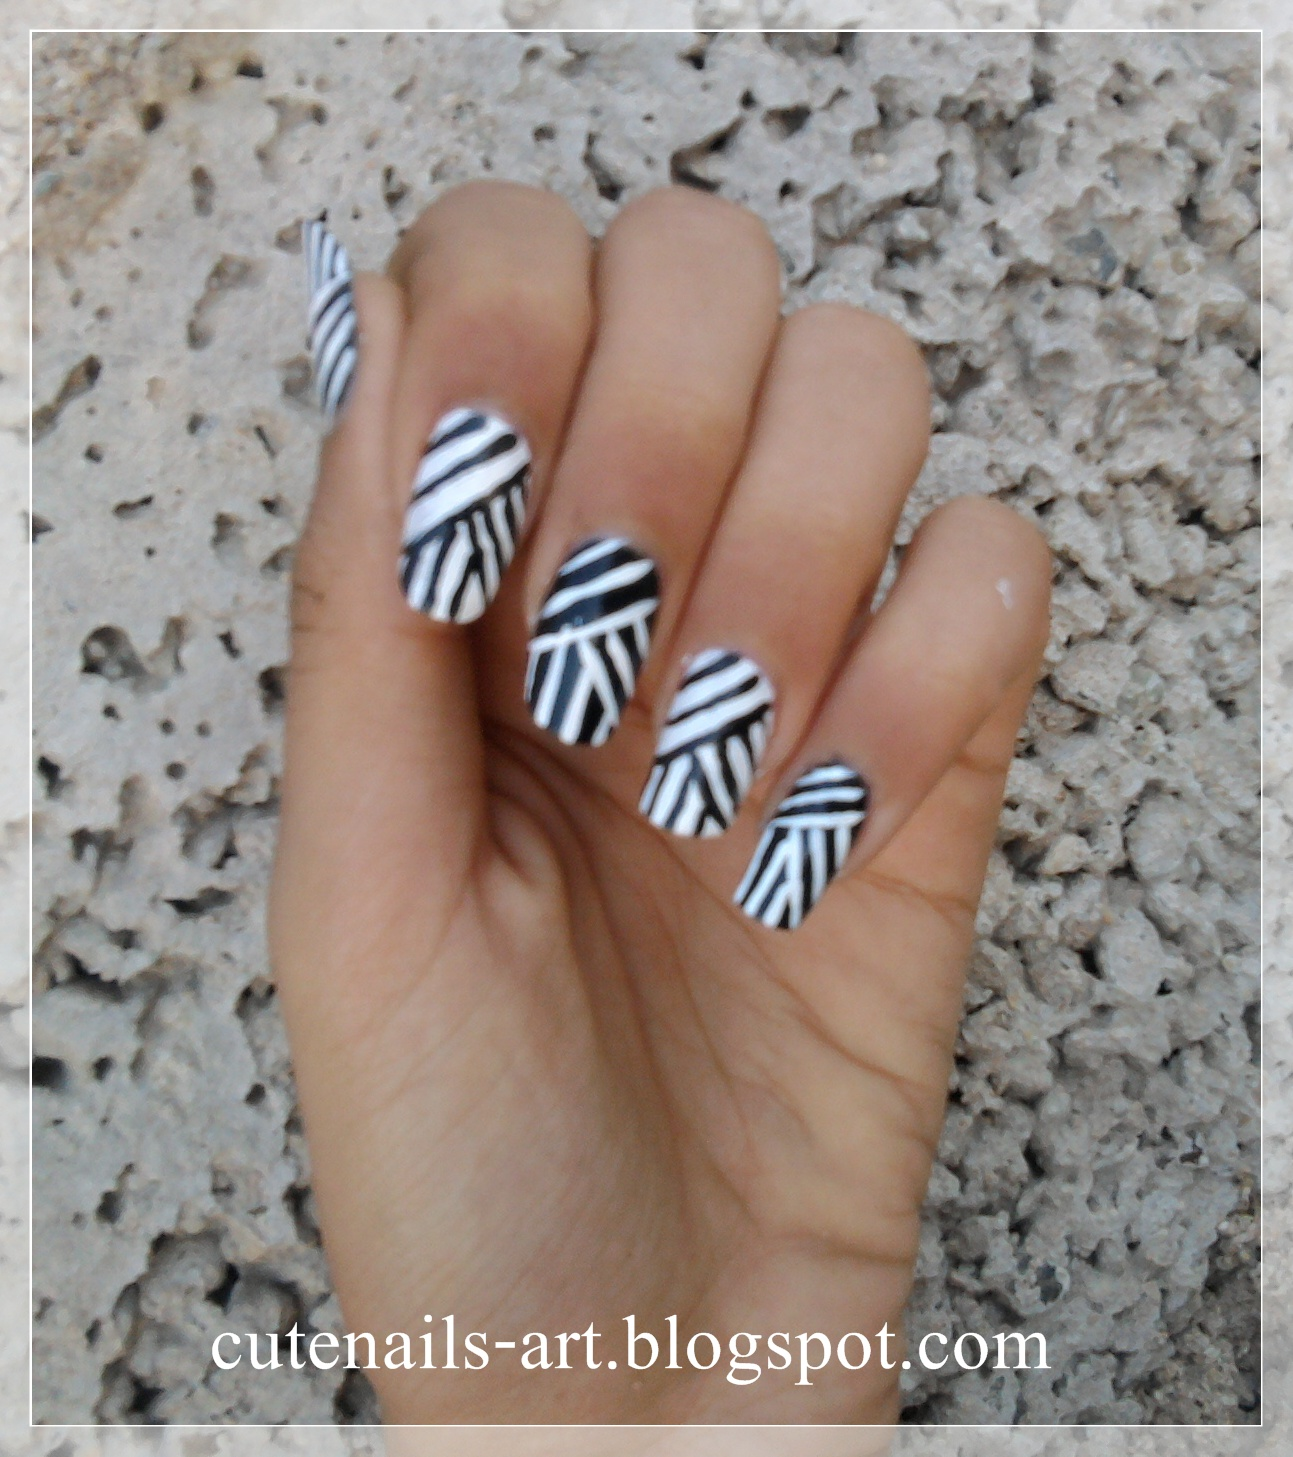 Line Design Nail Art : Cutenails art weaving lines nail design black and white